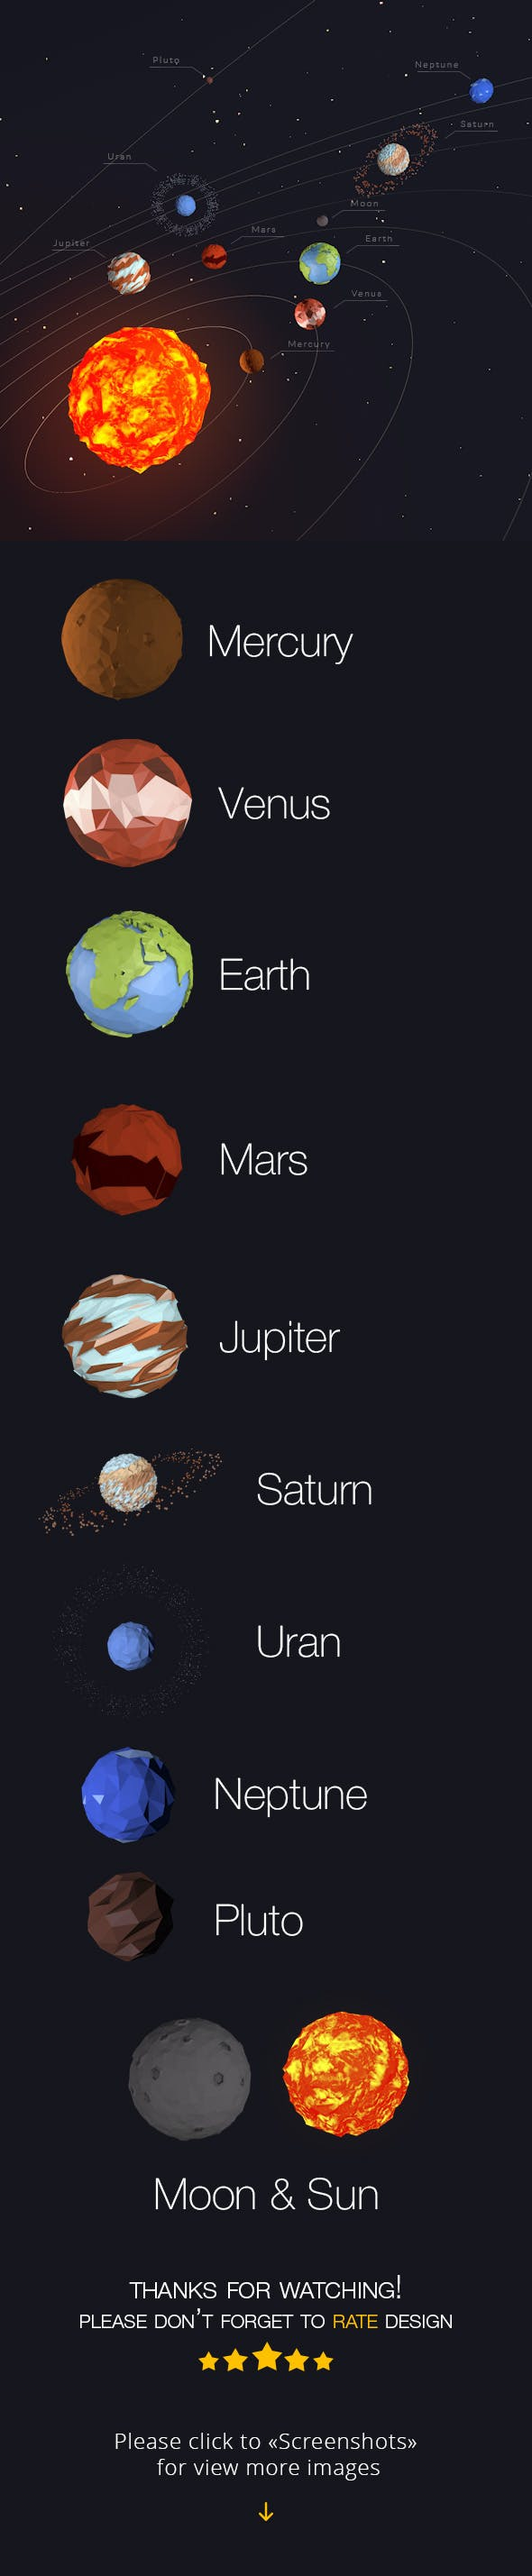 Low Poly Solar System - 3DOcean Item for Sale